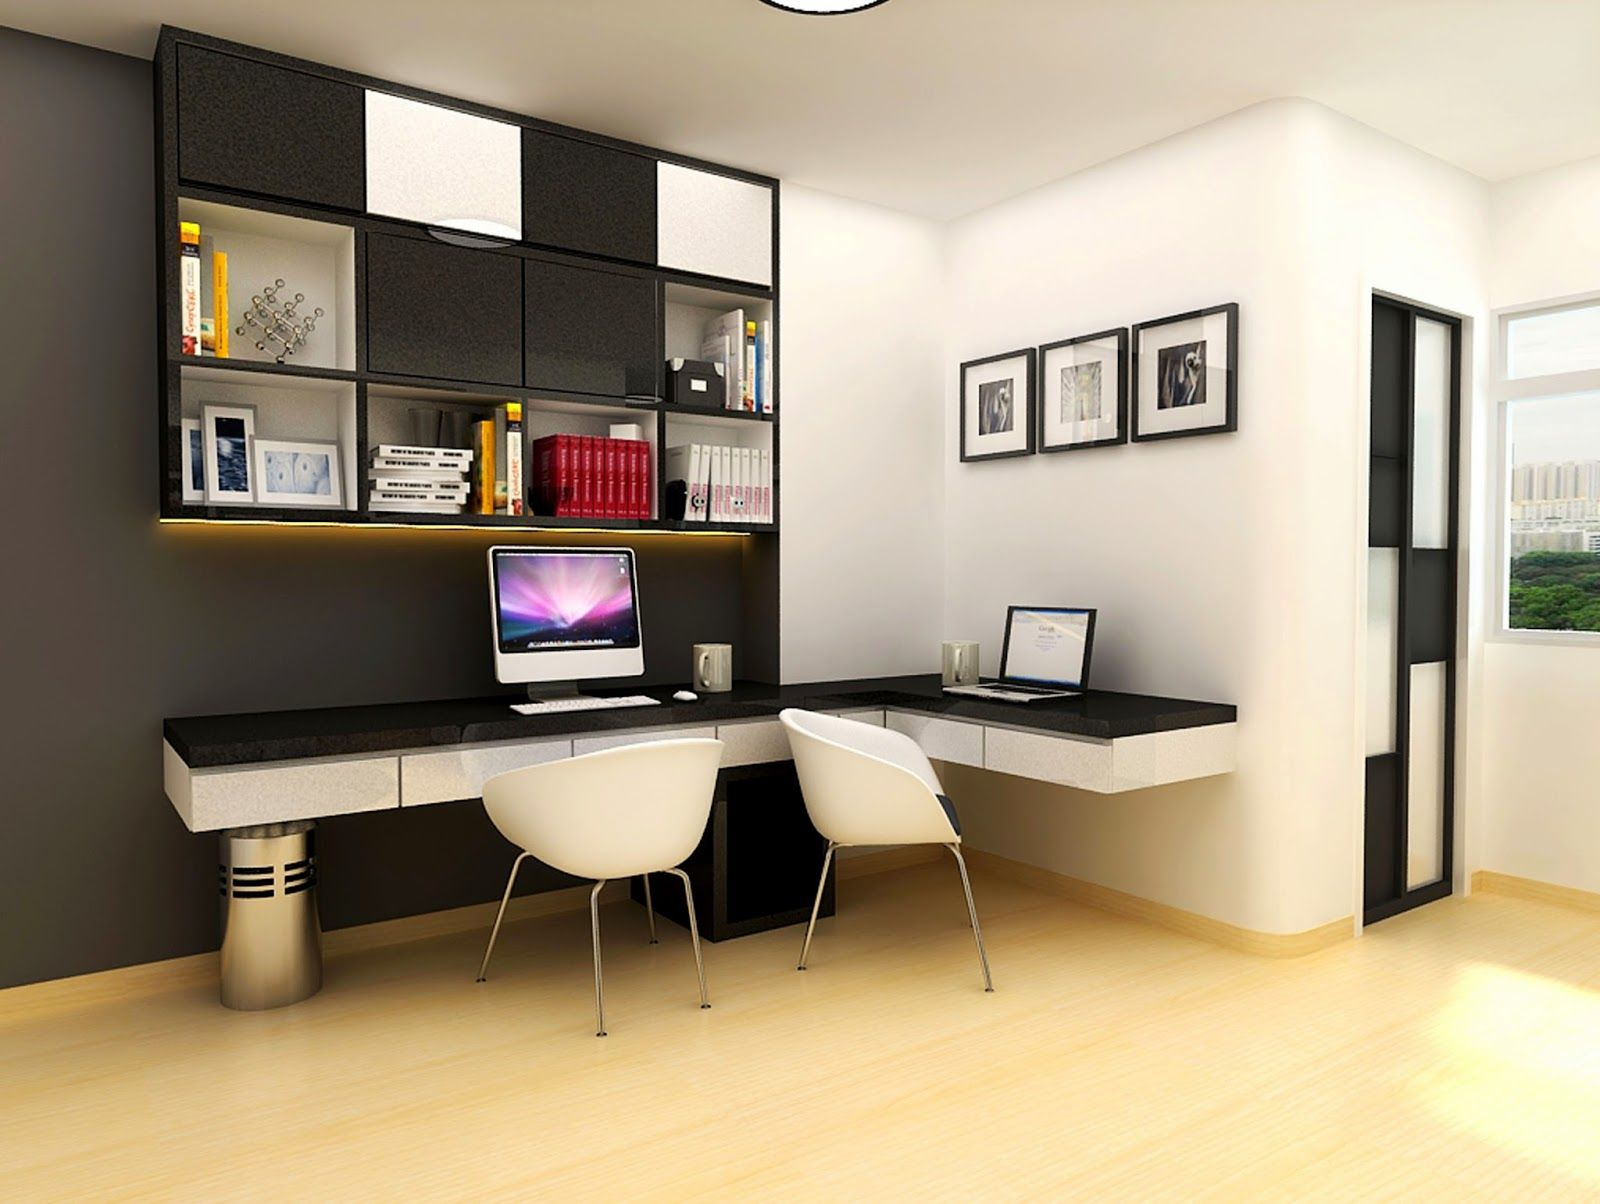 Excellent 11 Brilliant And Simple Study Table Ideas Collection Home Decor Largest Home Design Picture Inspirations Pitcheantrous